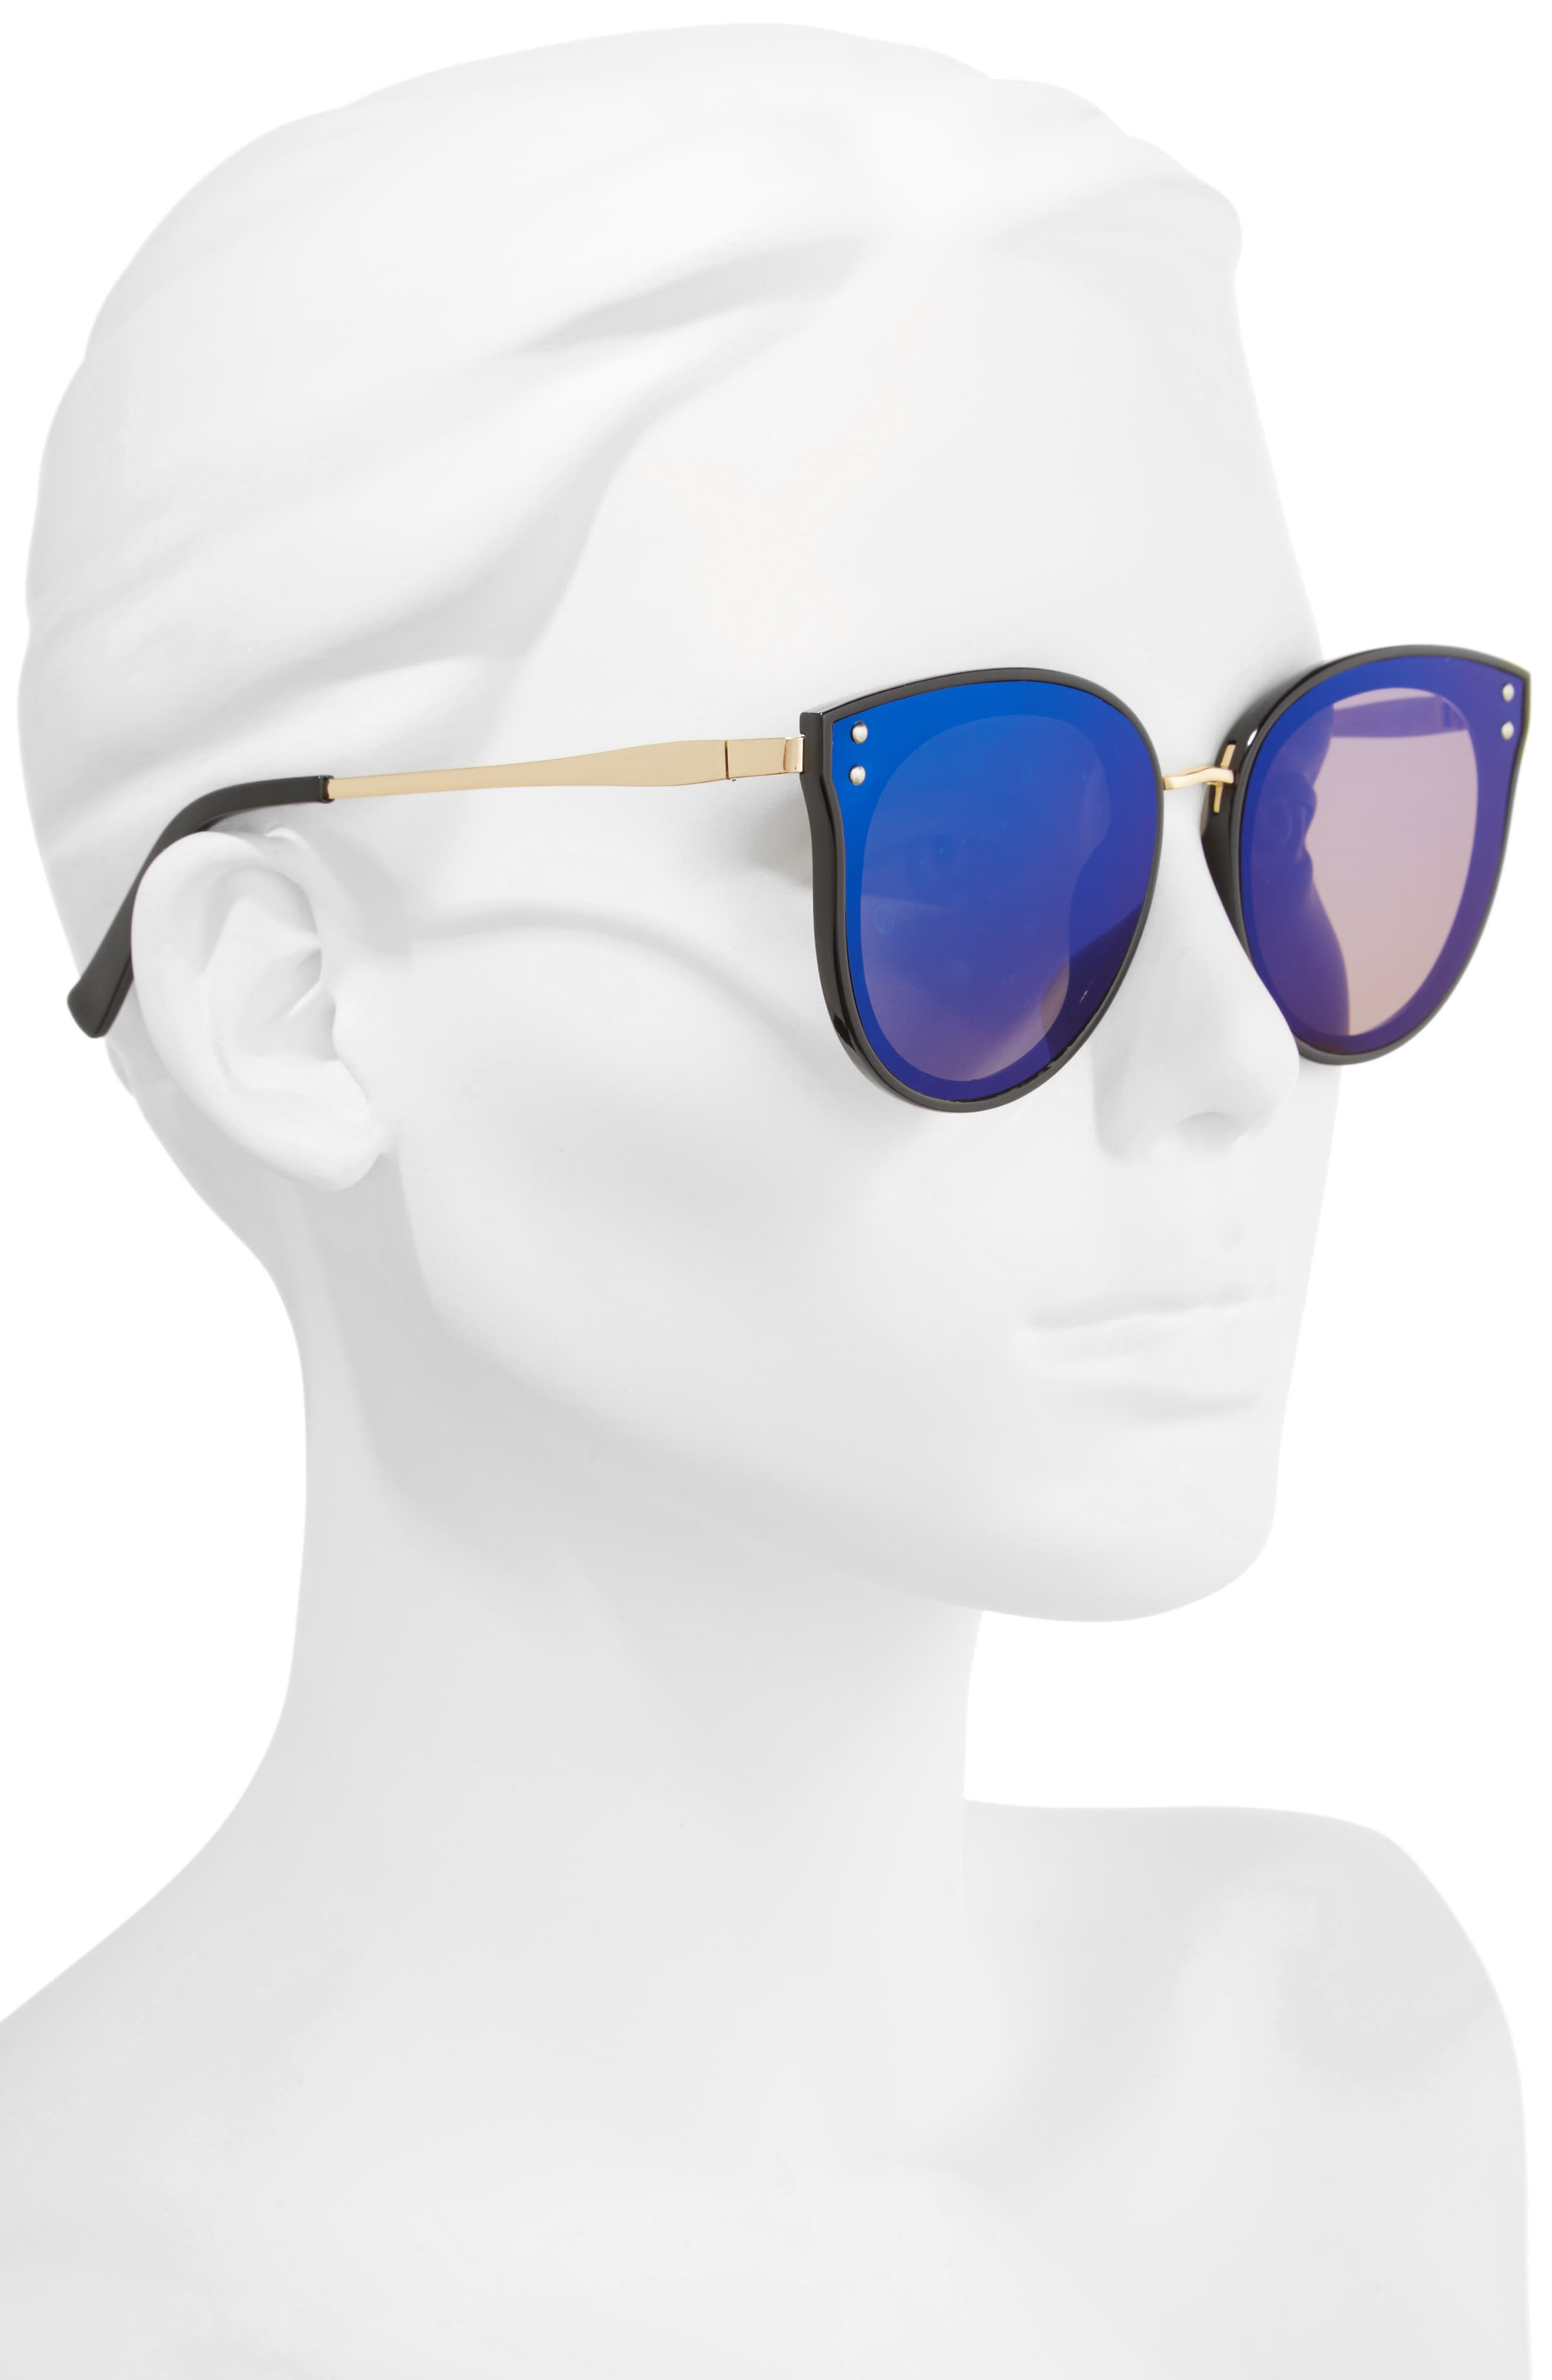 51mm Round Sunglasses,                             Alternate thumbnail 2, color,                             001